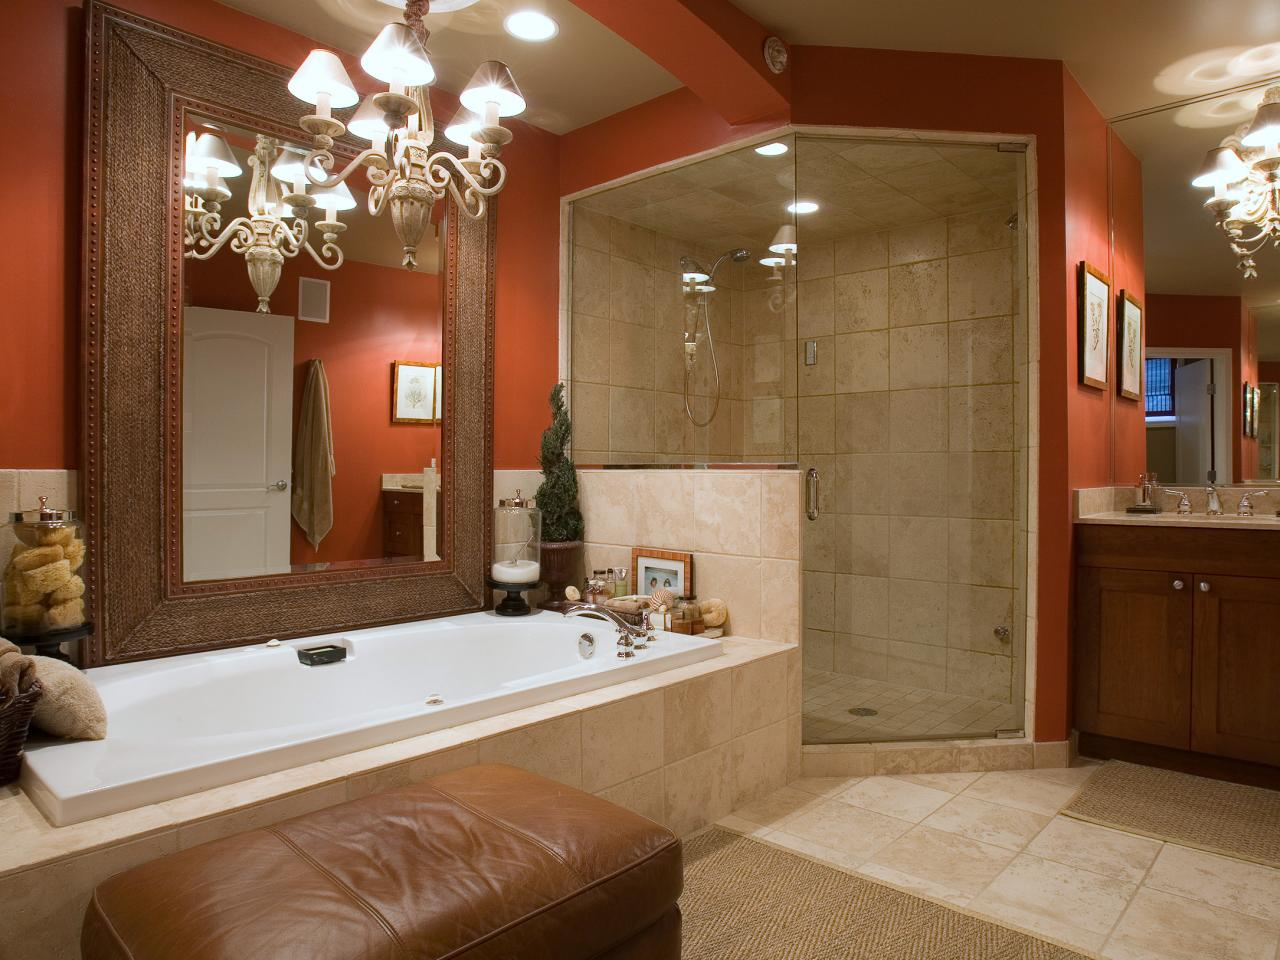 Good Colors For Bathrooms. Install Classic Chandeliers To Decorate Beige Bathroom Color Schemes Near Oak Vanity And Closed Shower Room